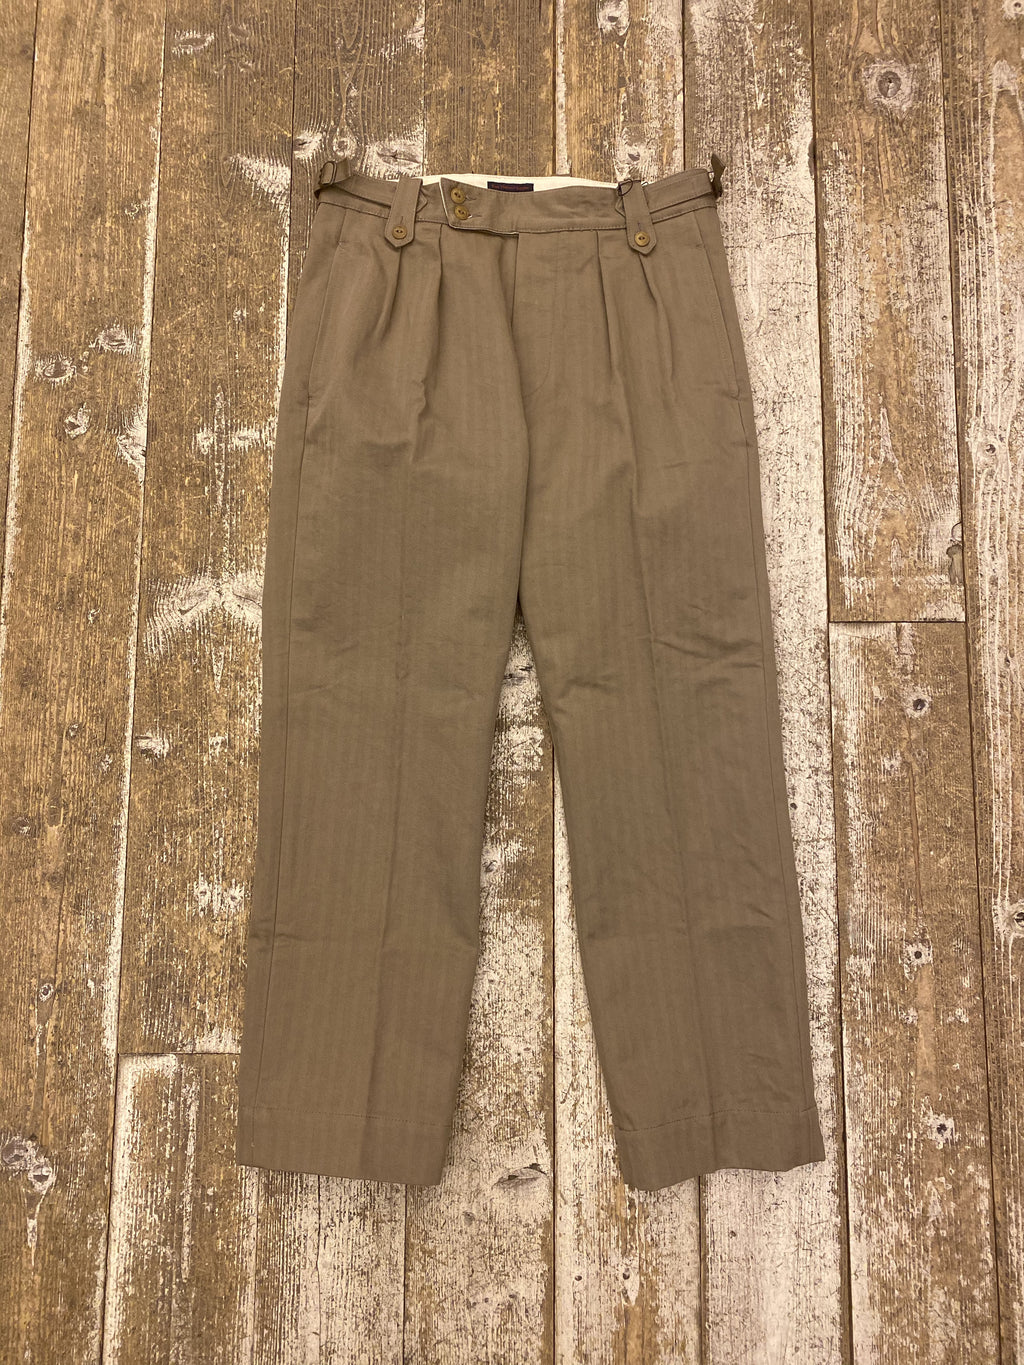 DEAN pant East Harbour Surplus FW - Dove Grey